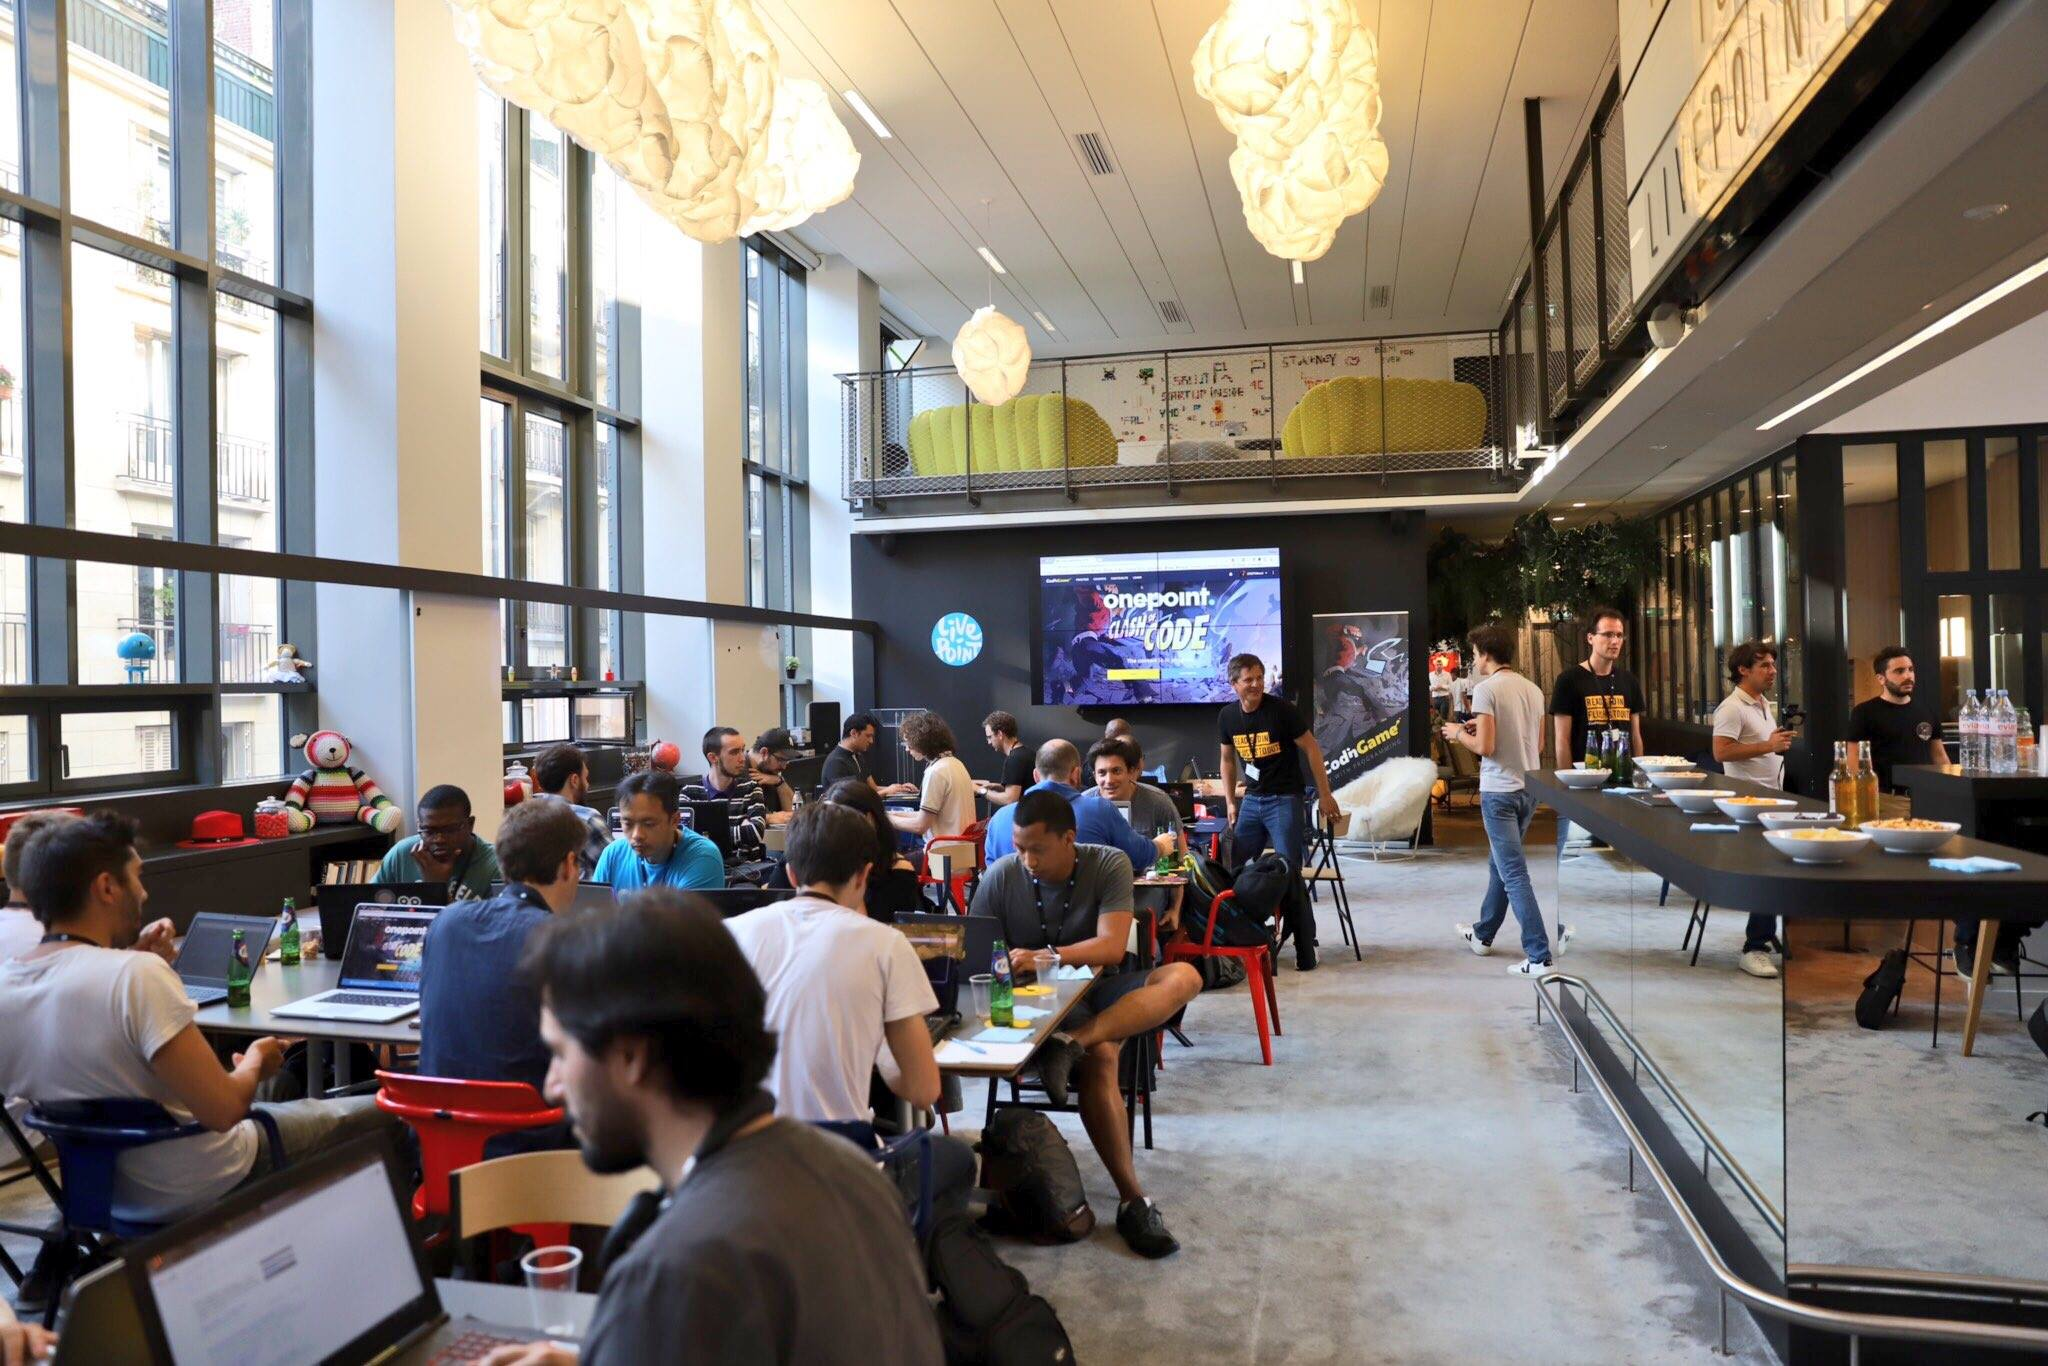 Amazing venue at Onepoint to play Clash of Code